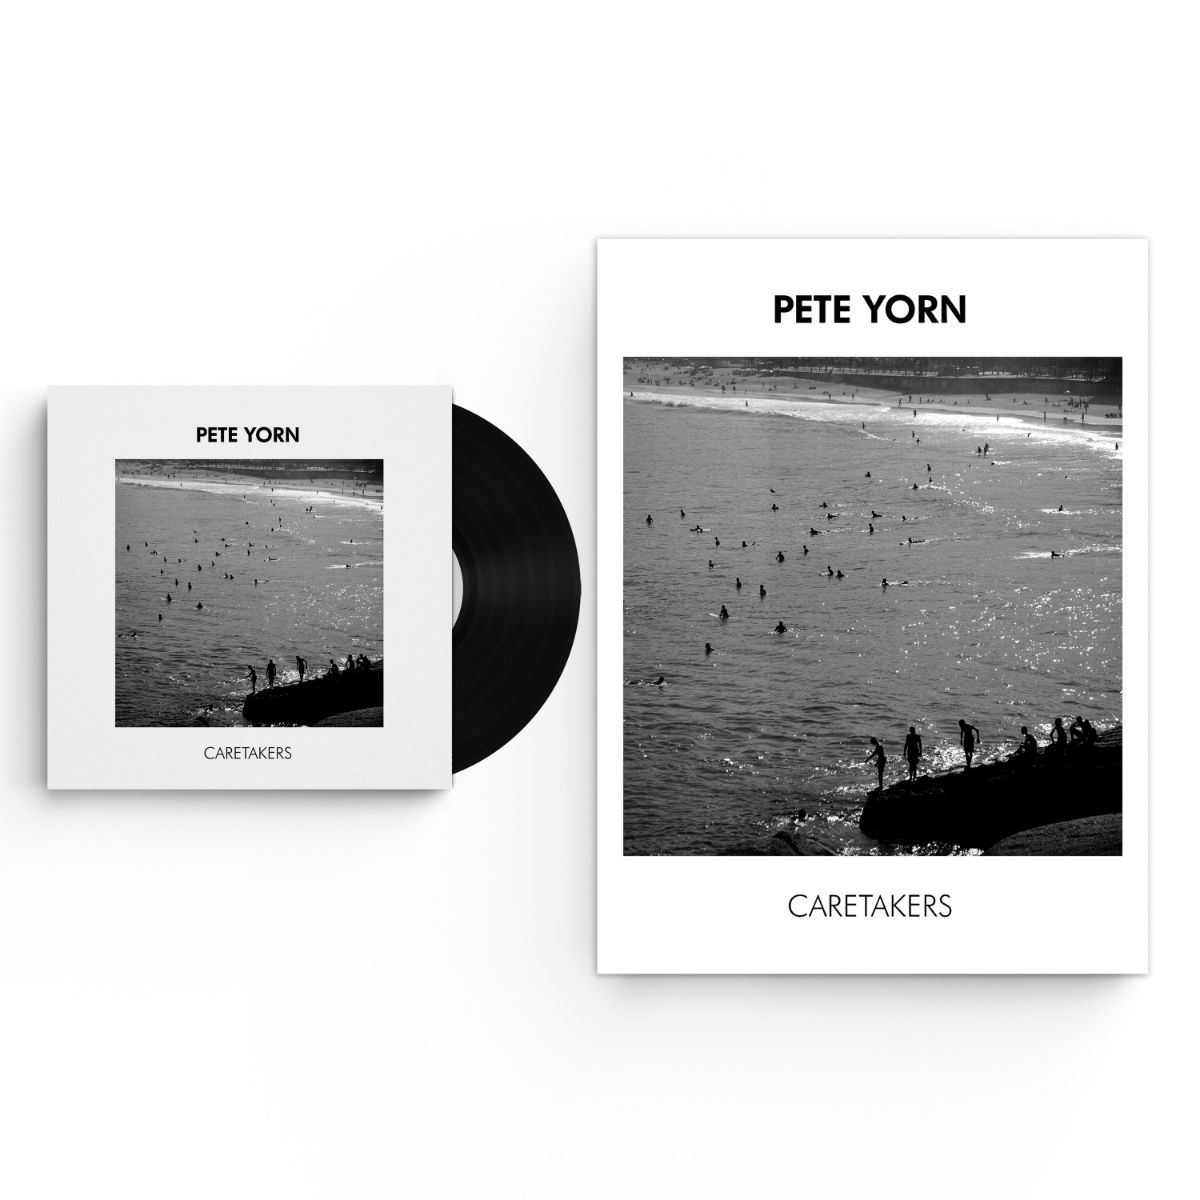 Caretakers Vinyl or Digital Download with Limited Edition Autographed Poster Bundle